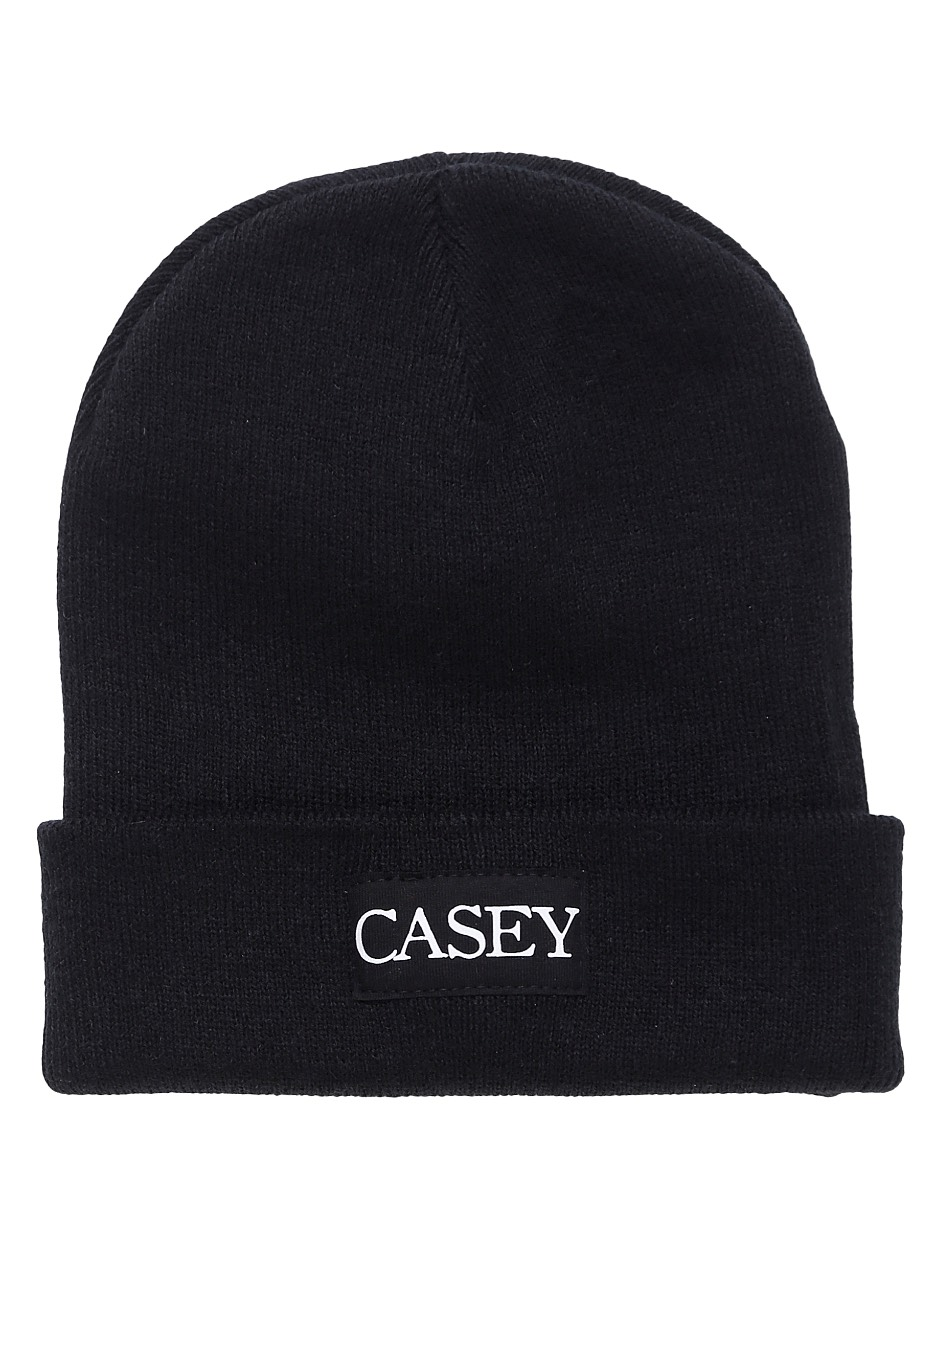 casey logo long beanie official emo merchandise shop